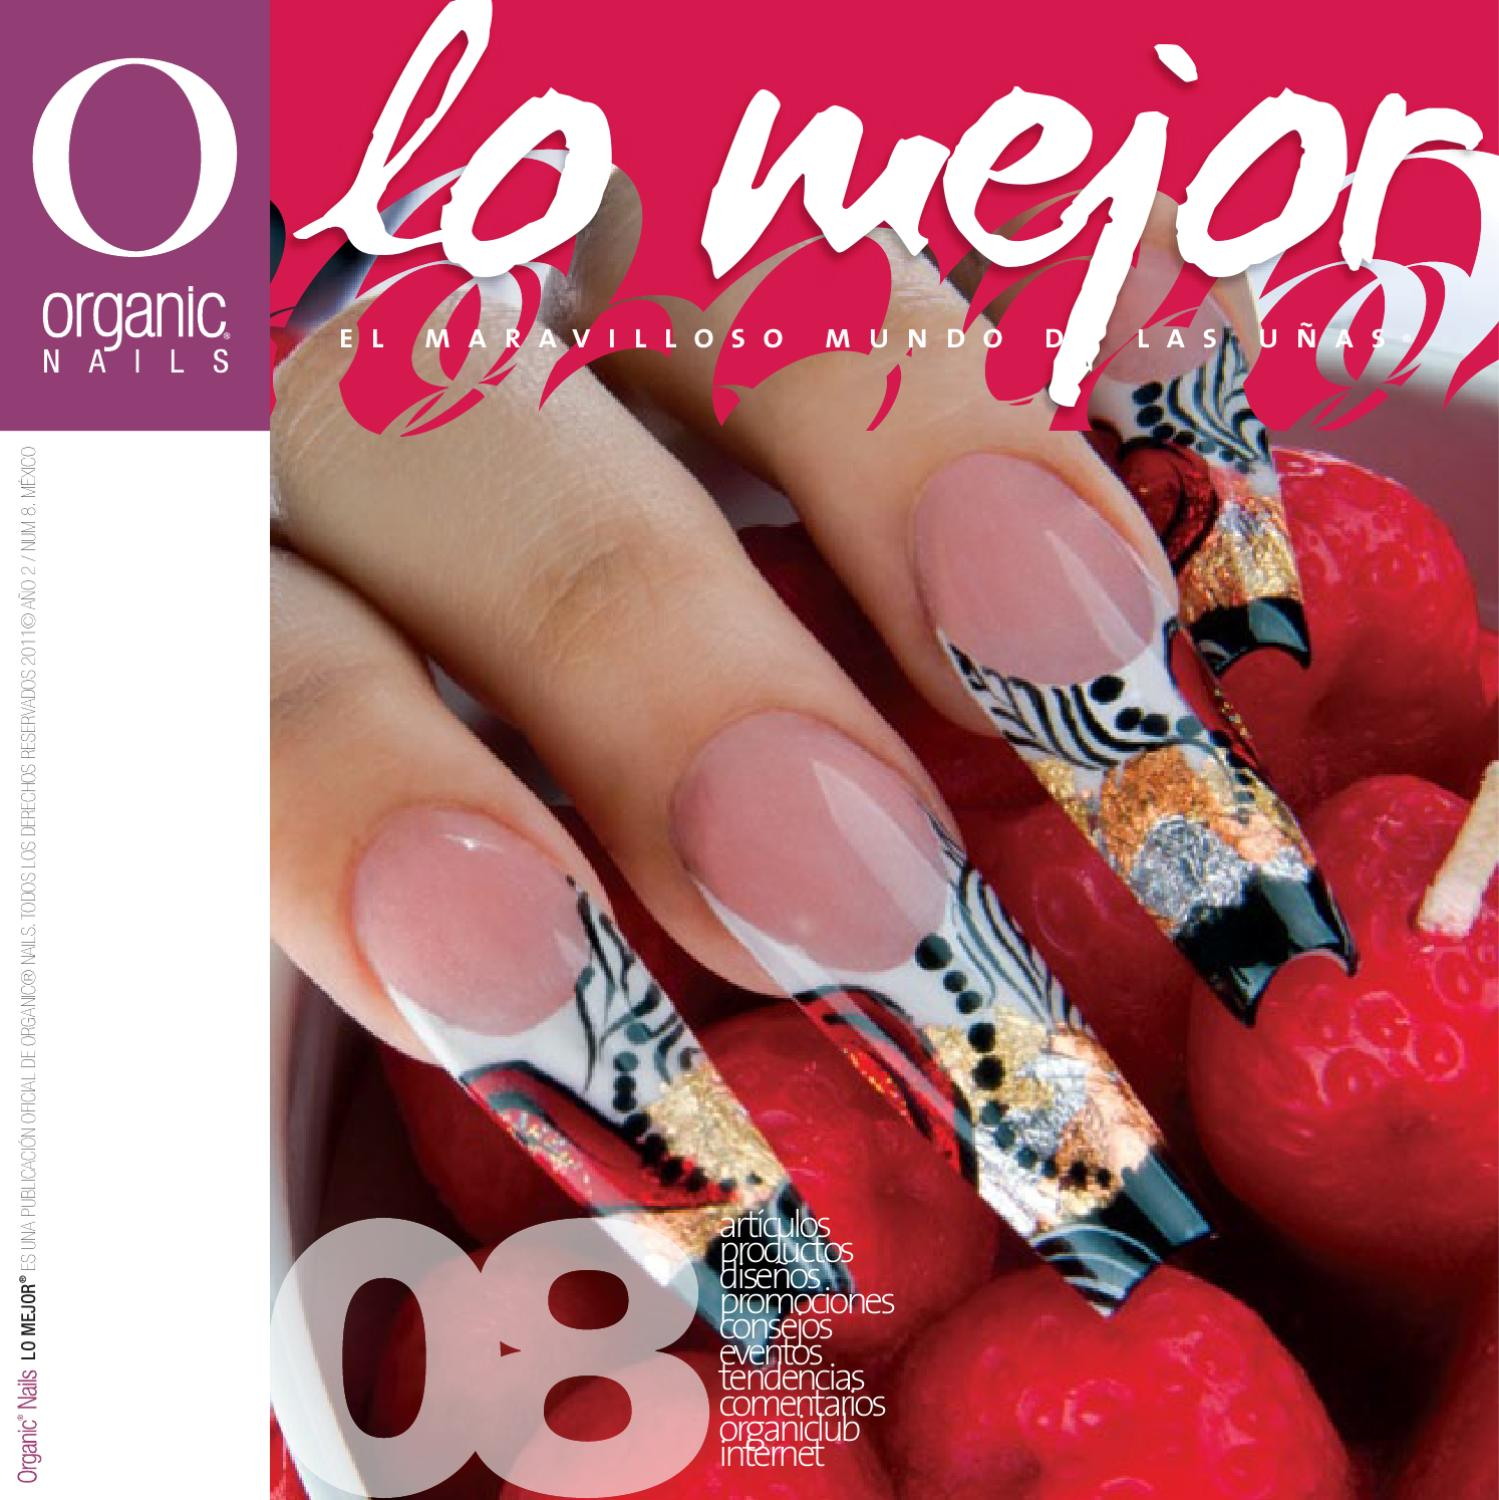 Lo Mejor 08 / Organic® Nails by Organic Nails® - issuu